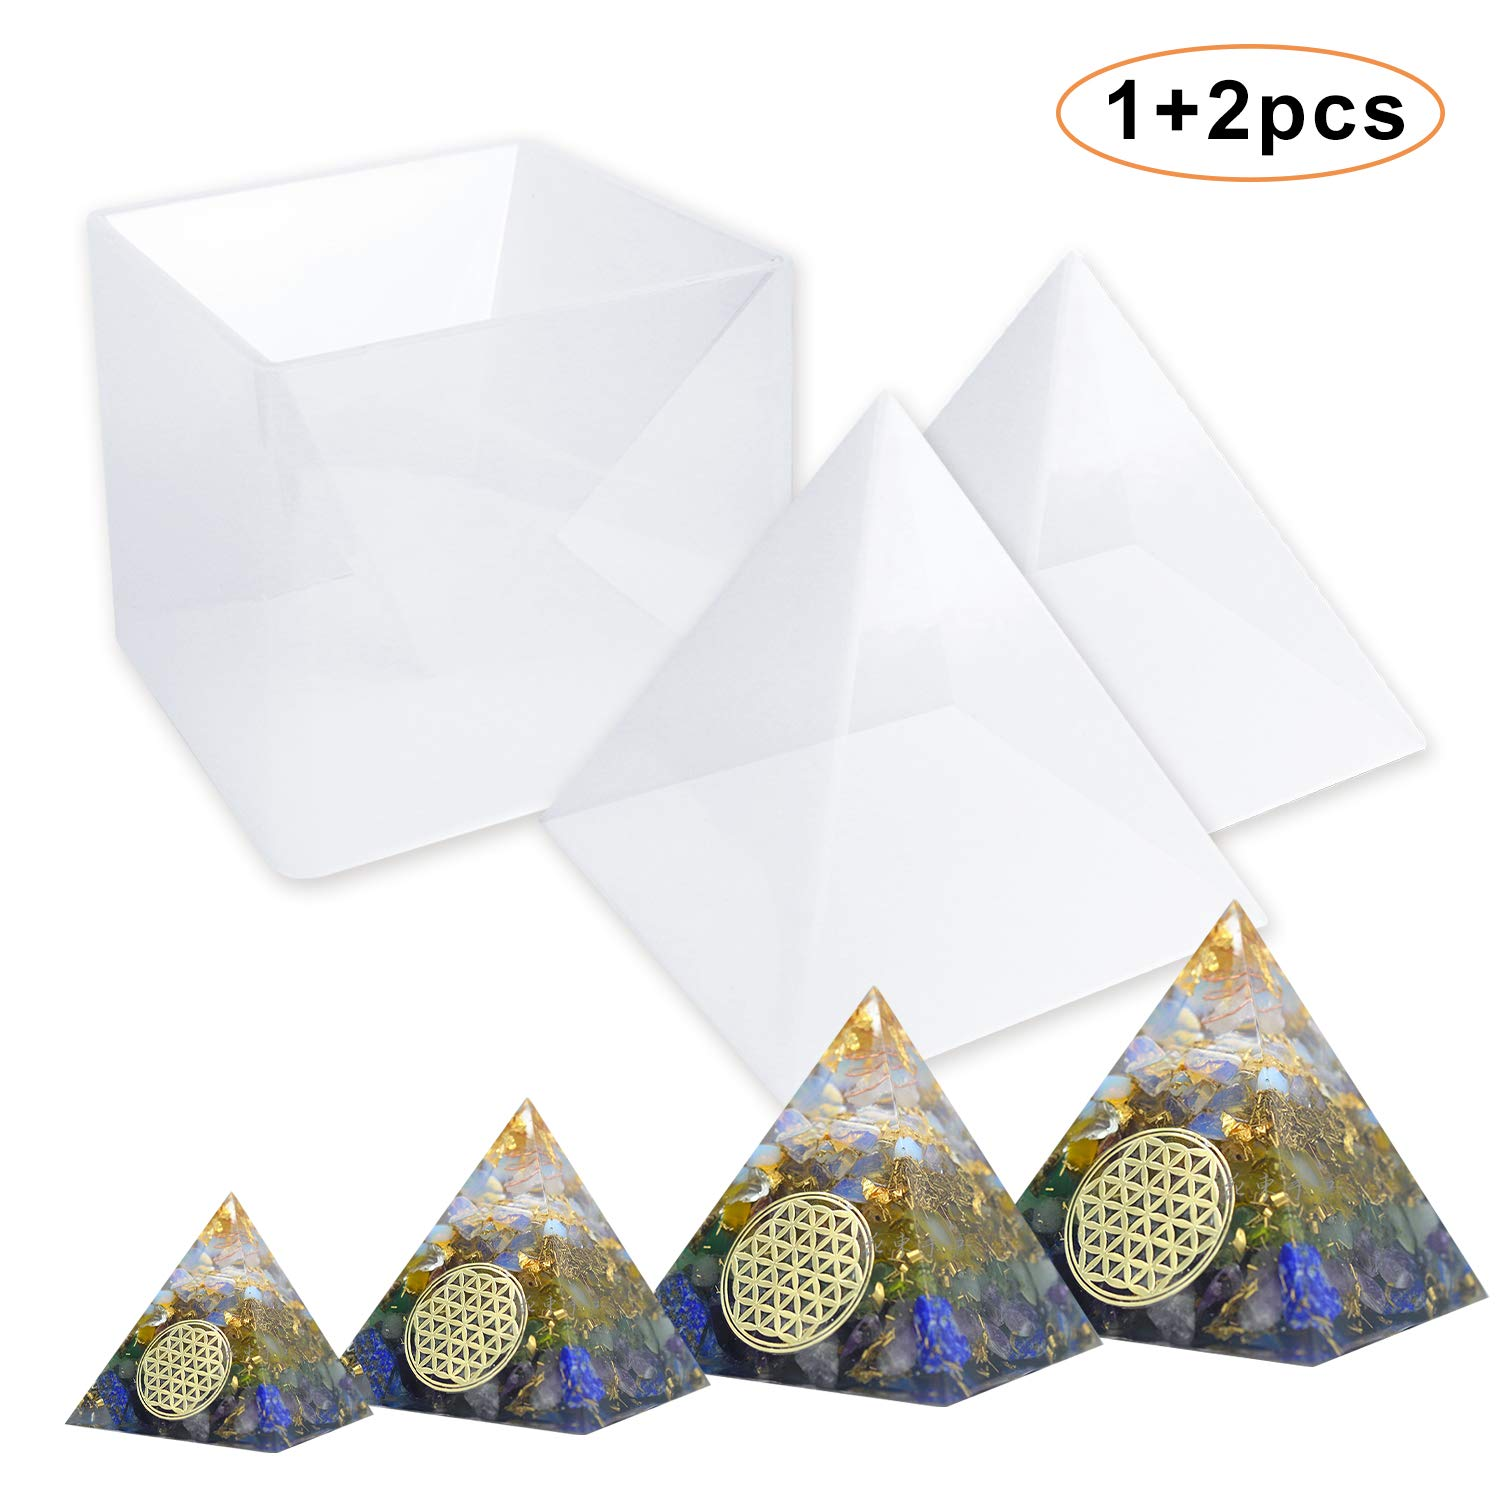 JOFAMY Large Pyramid Molds, Epoxy Resin Molds, Resin Silicone Molds for Orgonite Orgone Pyramid, Paperweight, Craft, Jewelry Making, Home Decoration(15cm/5.9inch Height) E4ulife